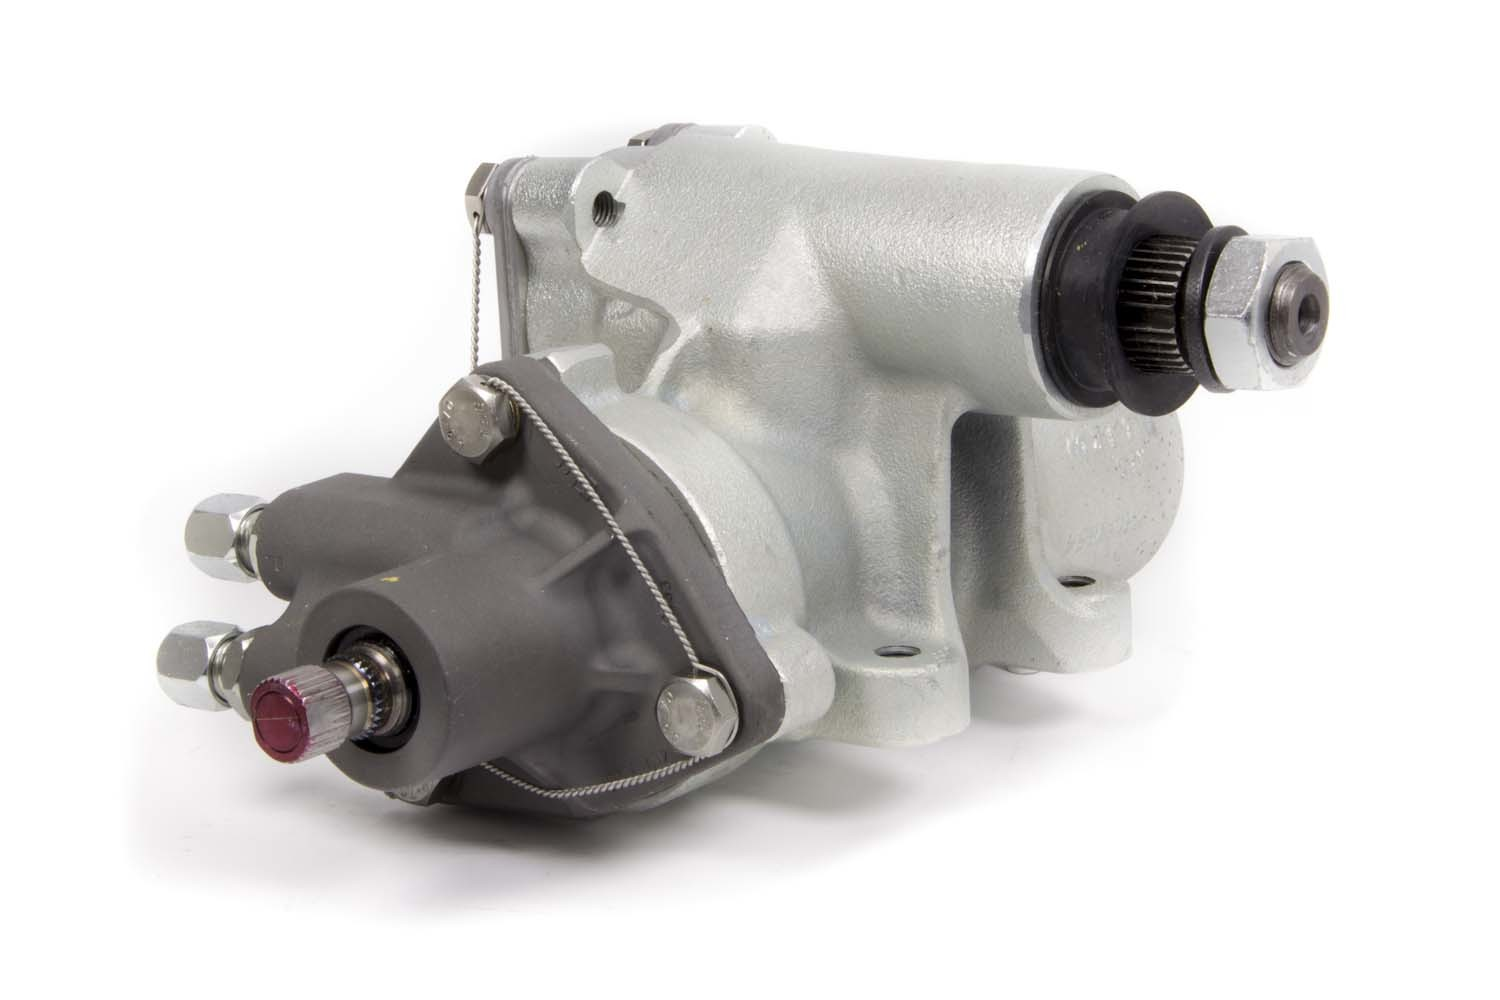 Sweet 209-10235 Steering Box, Power, 4-Bolt, 600 Gear, 10 to 1 Ratio, 0.235 in Valve, Iron, Natural, Universal, Each